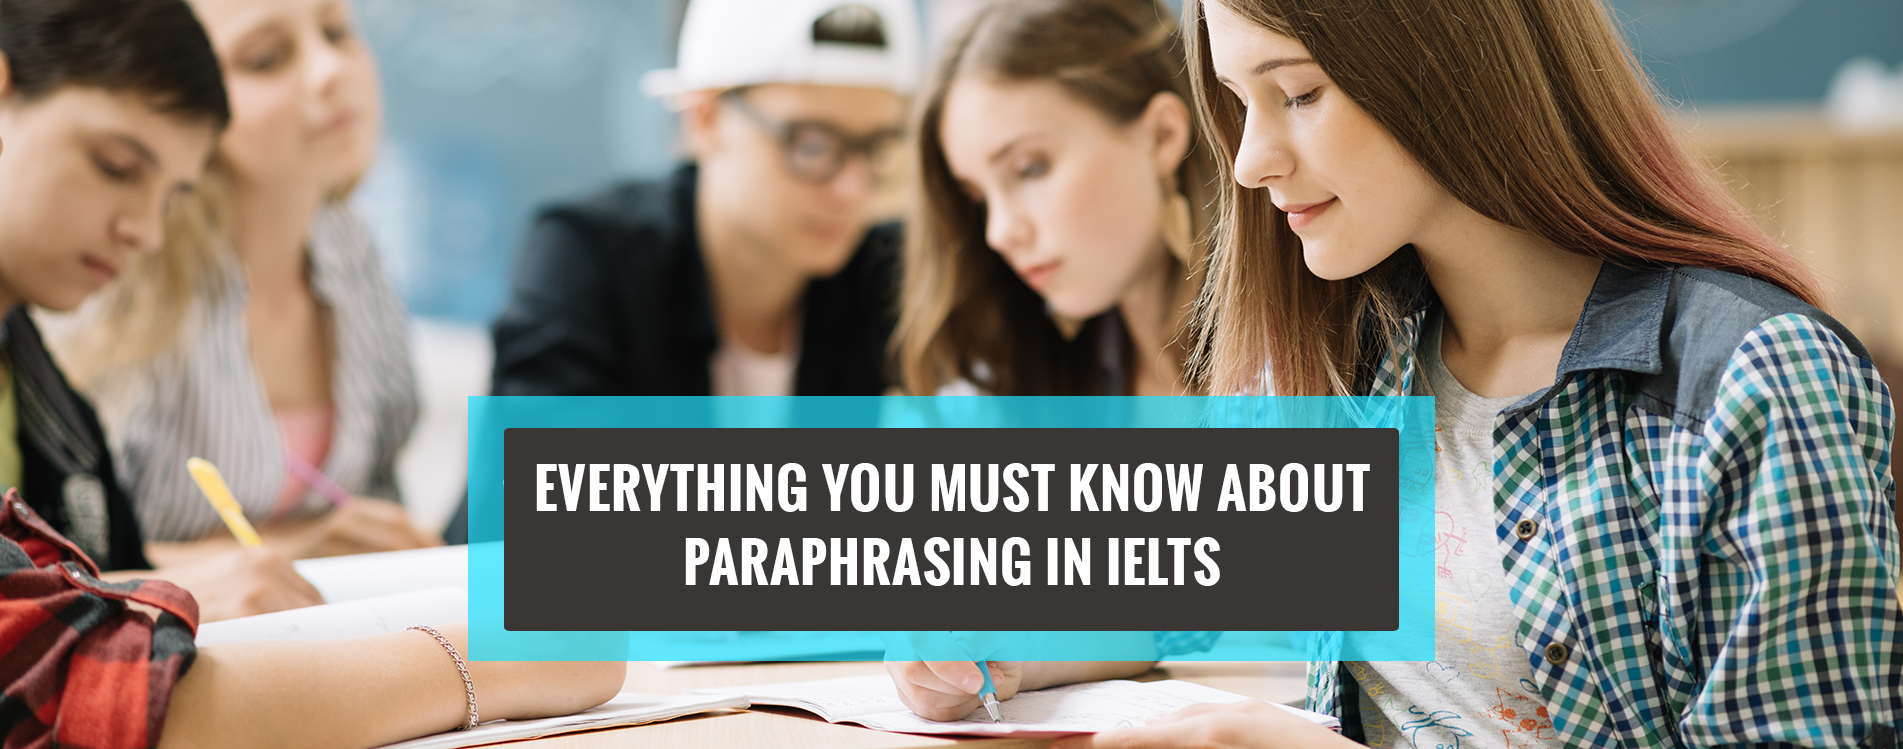 Everything You Must Know About Paraphrasing in IELTS